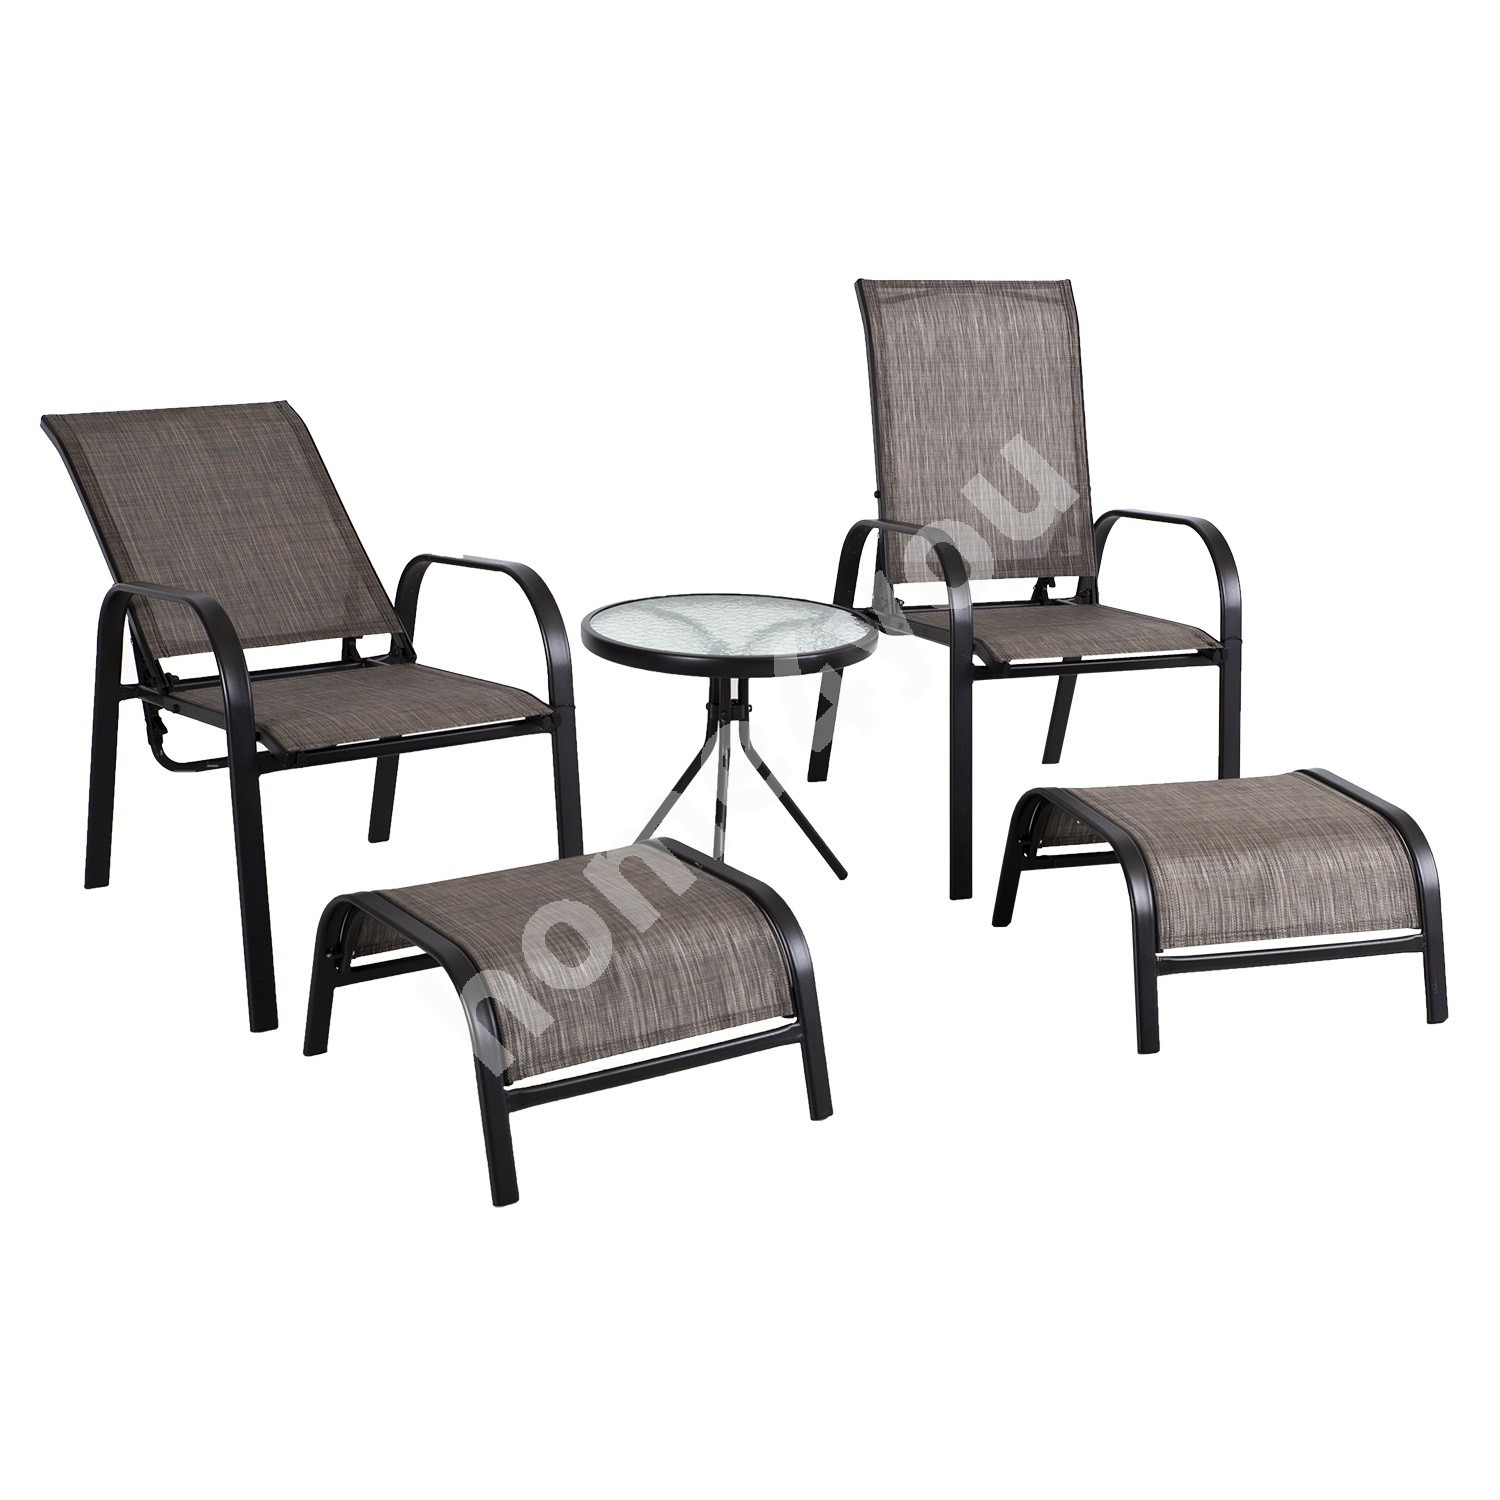 Garden furniture set DAKOTA table, 2 chairs with adjustable backrest and 2 foot stools, seats: grey textiline, black ste